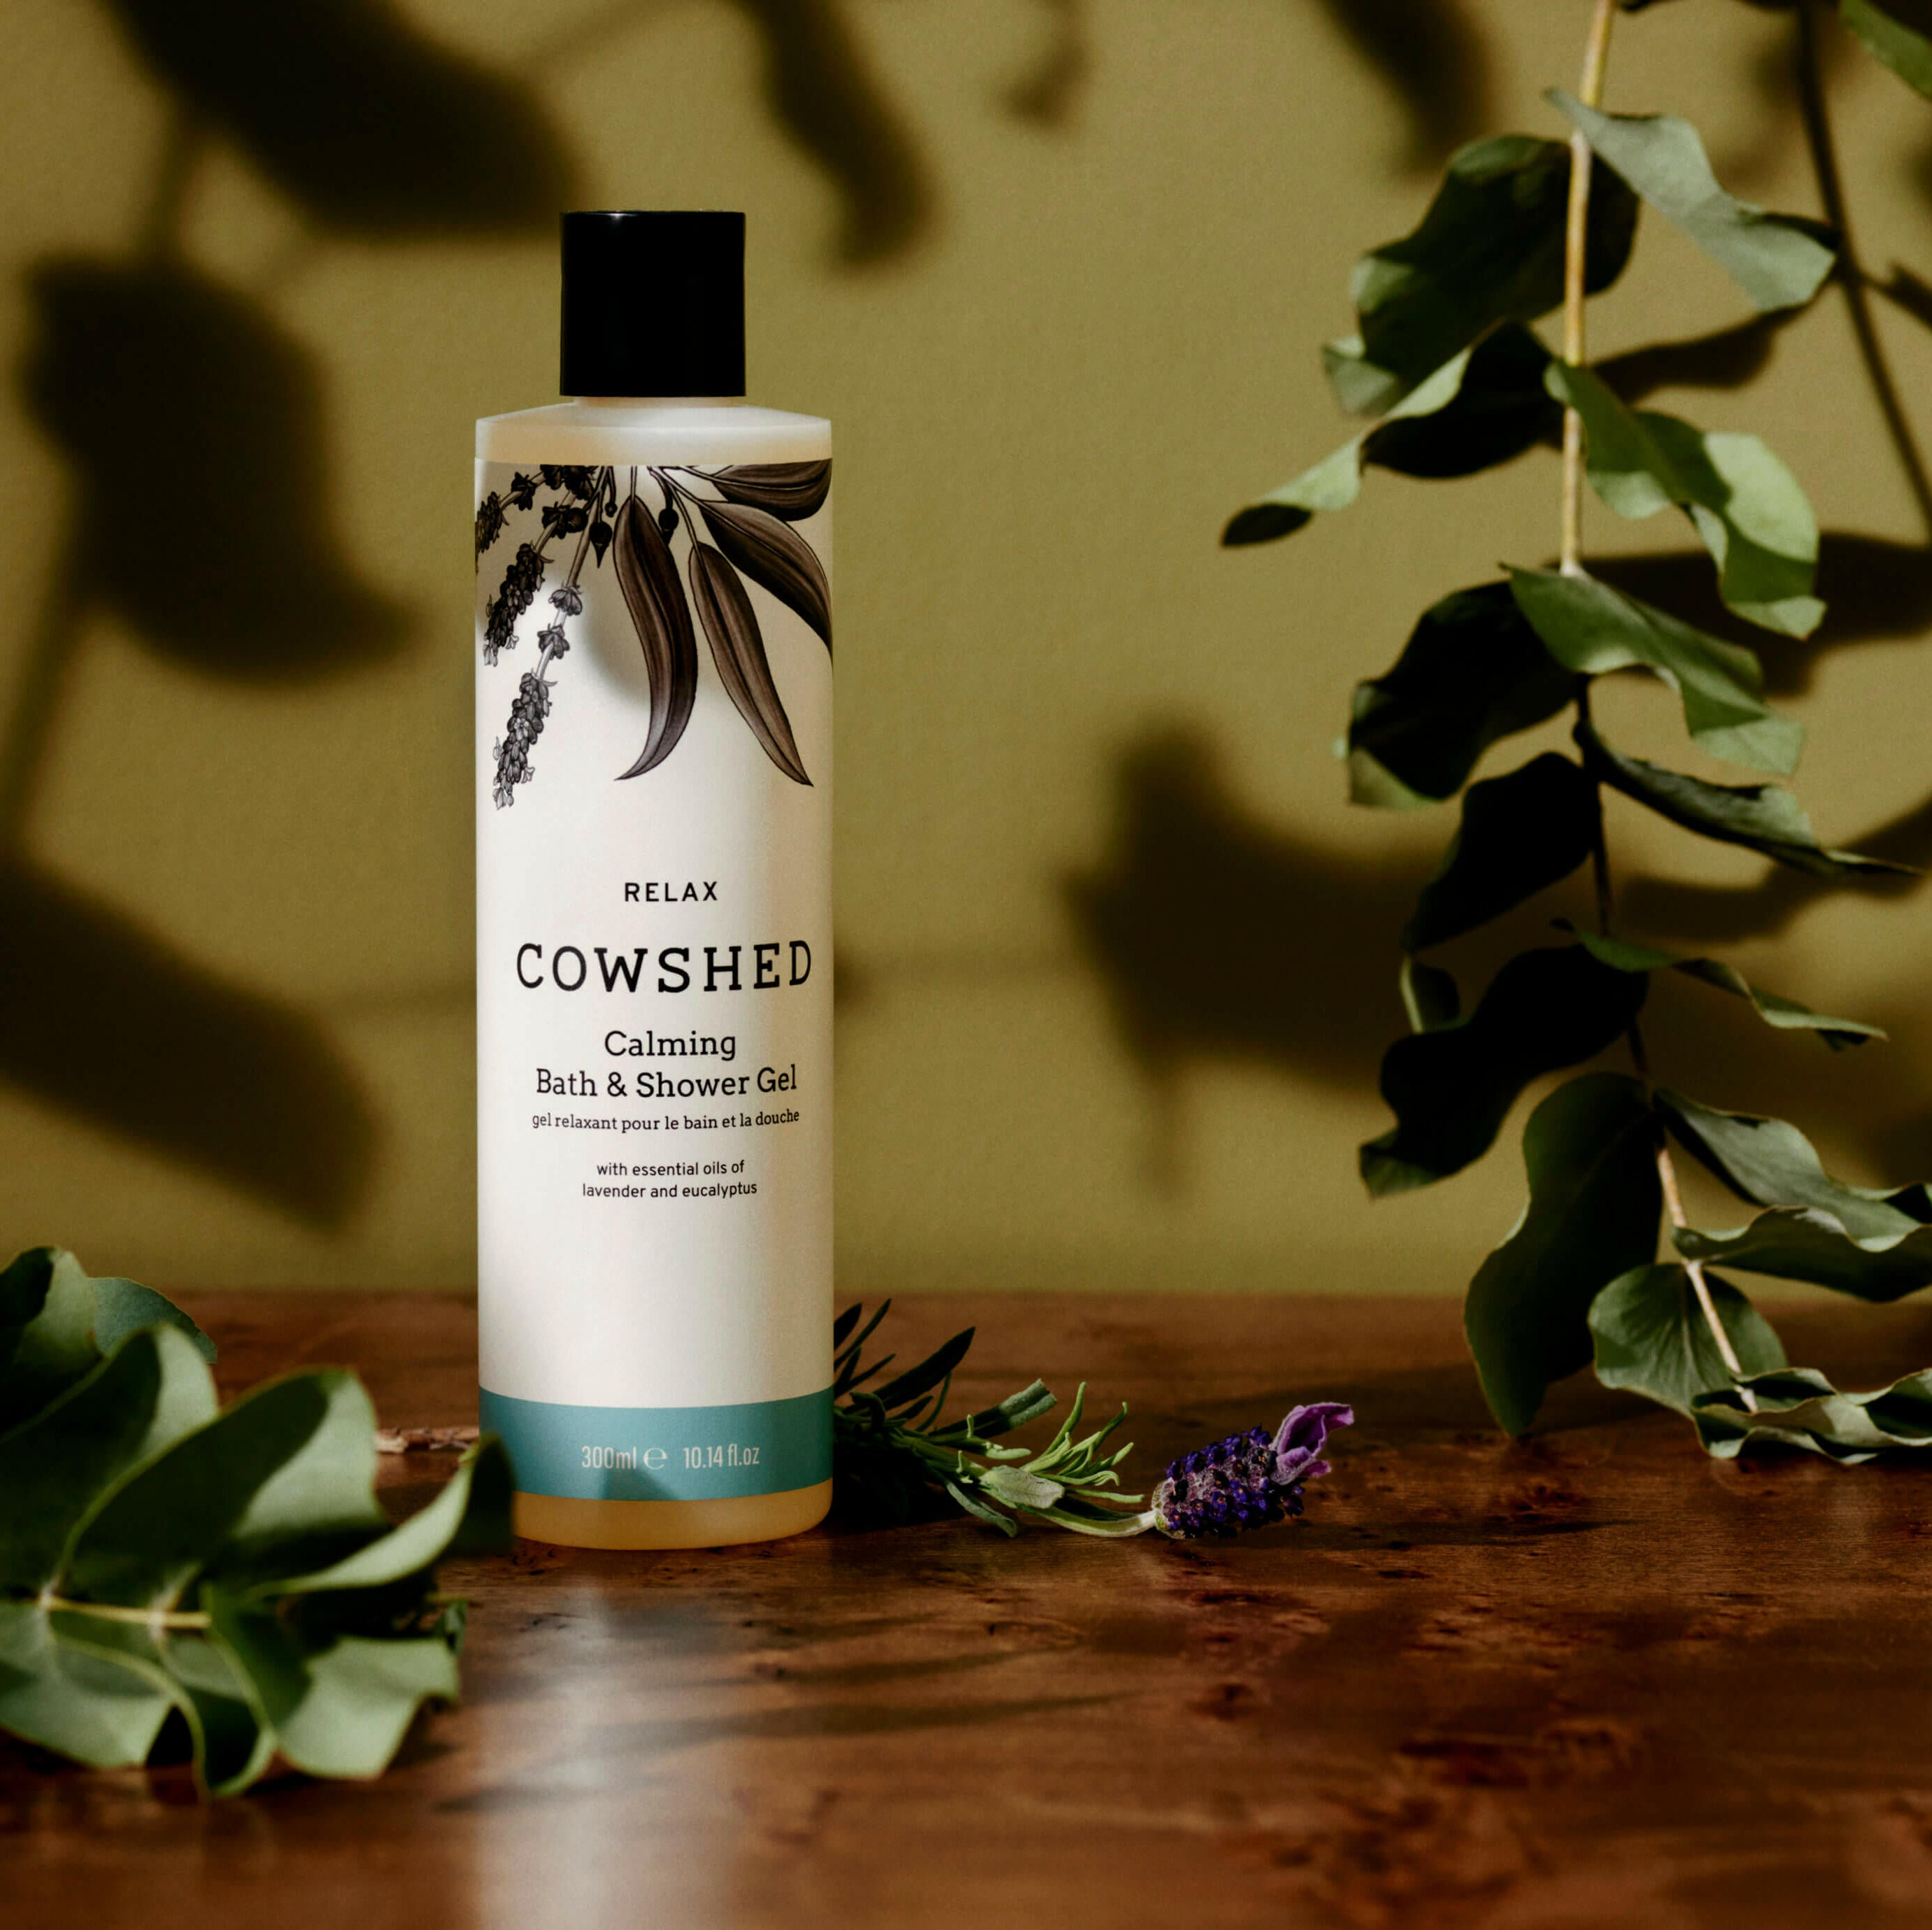 COWSHED RELAX BATH & SHOWER GEL